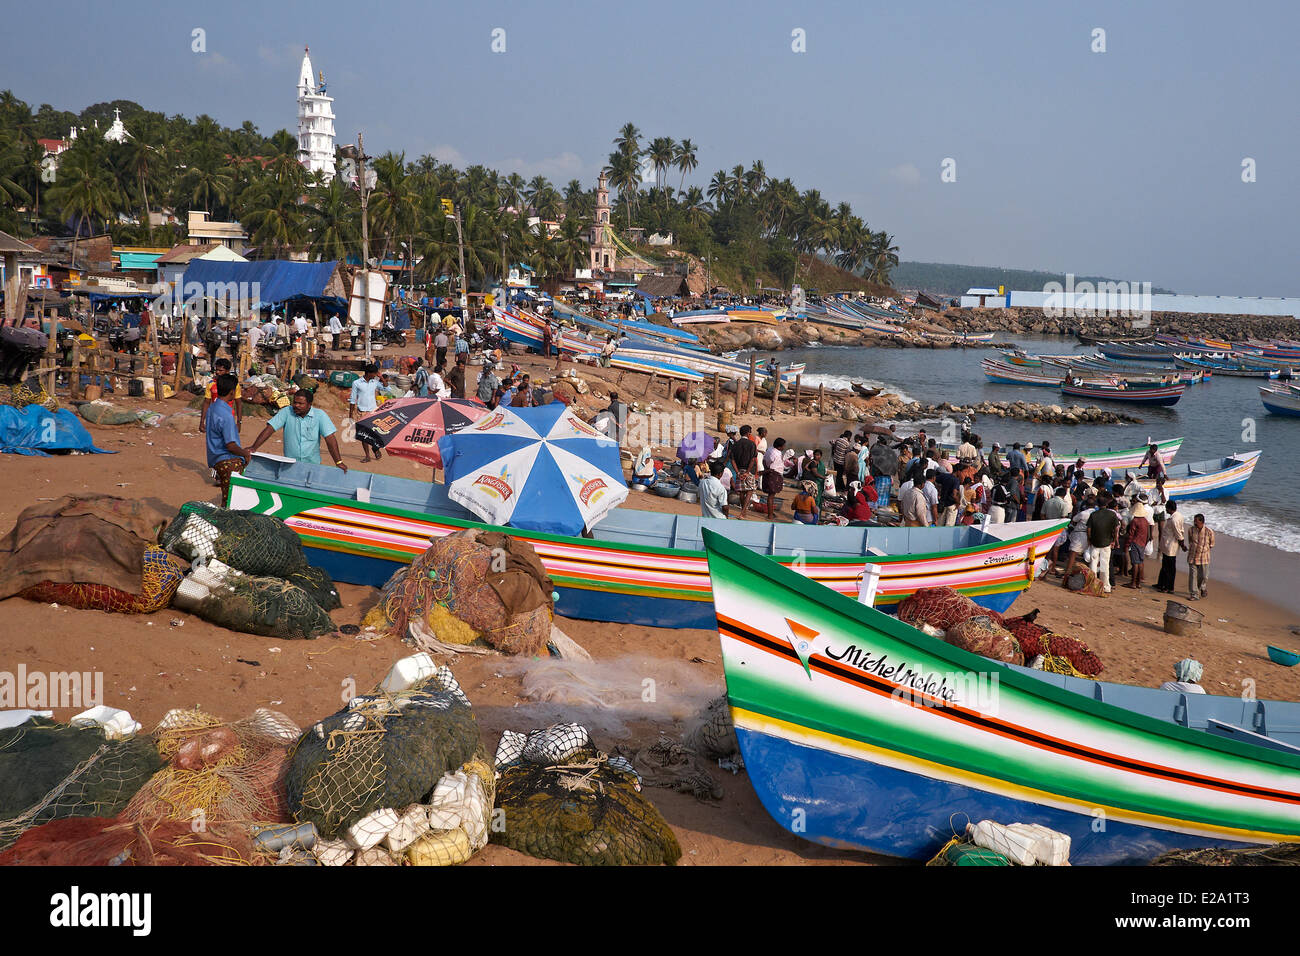 India, Kerala state, Vizhinjam, the fishing port - Stock Image